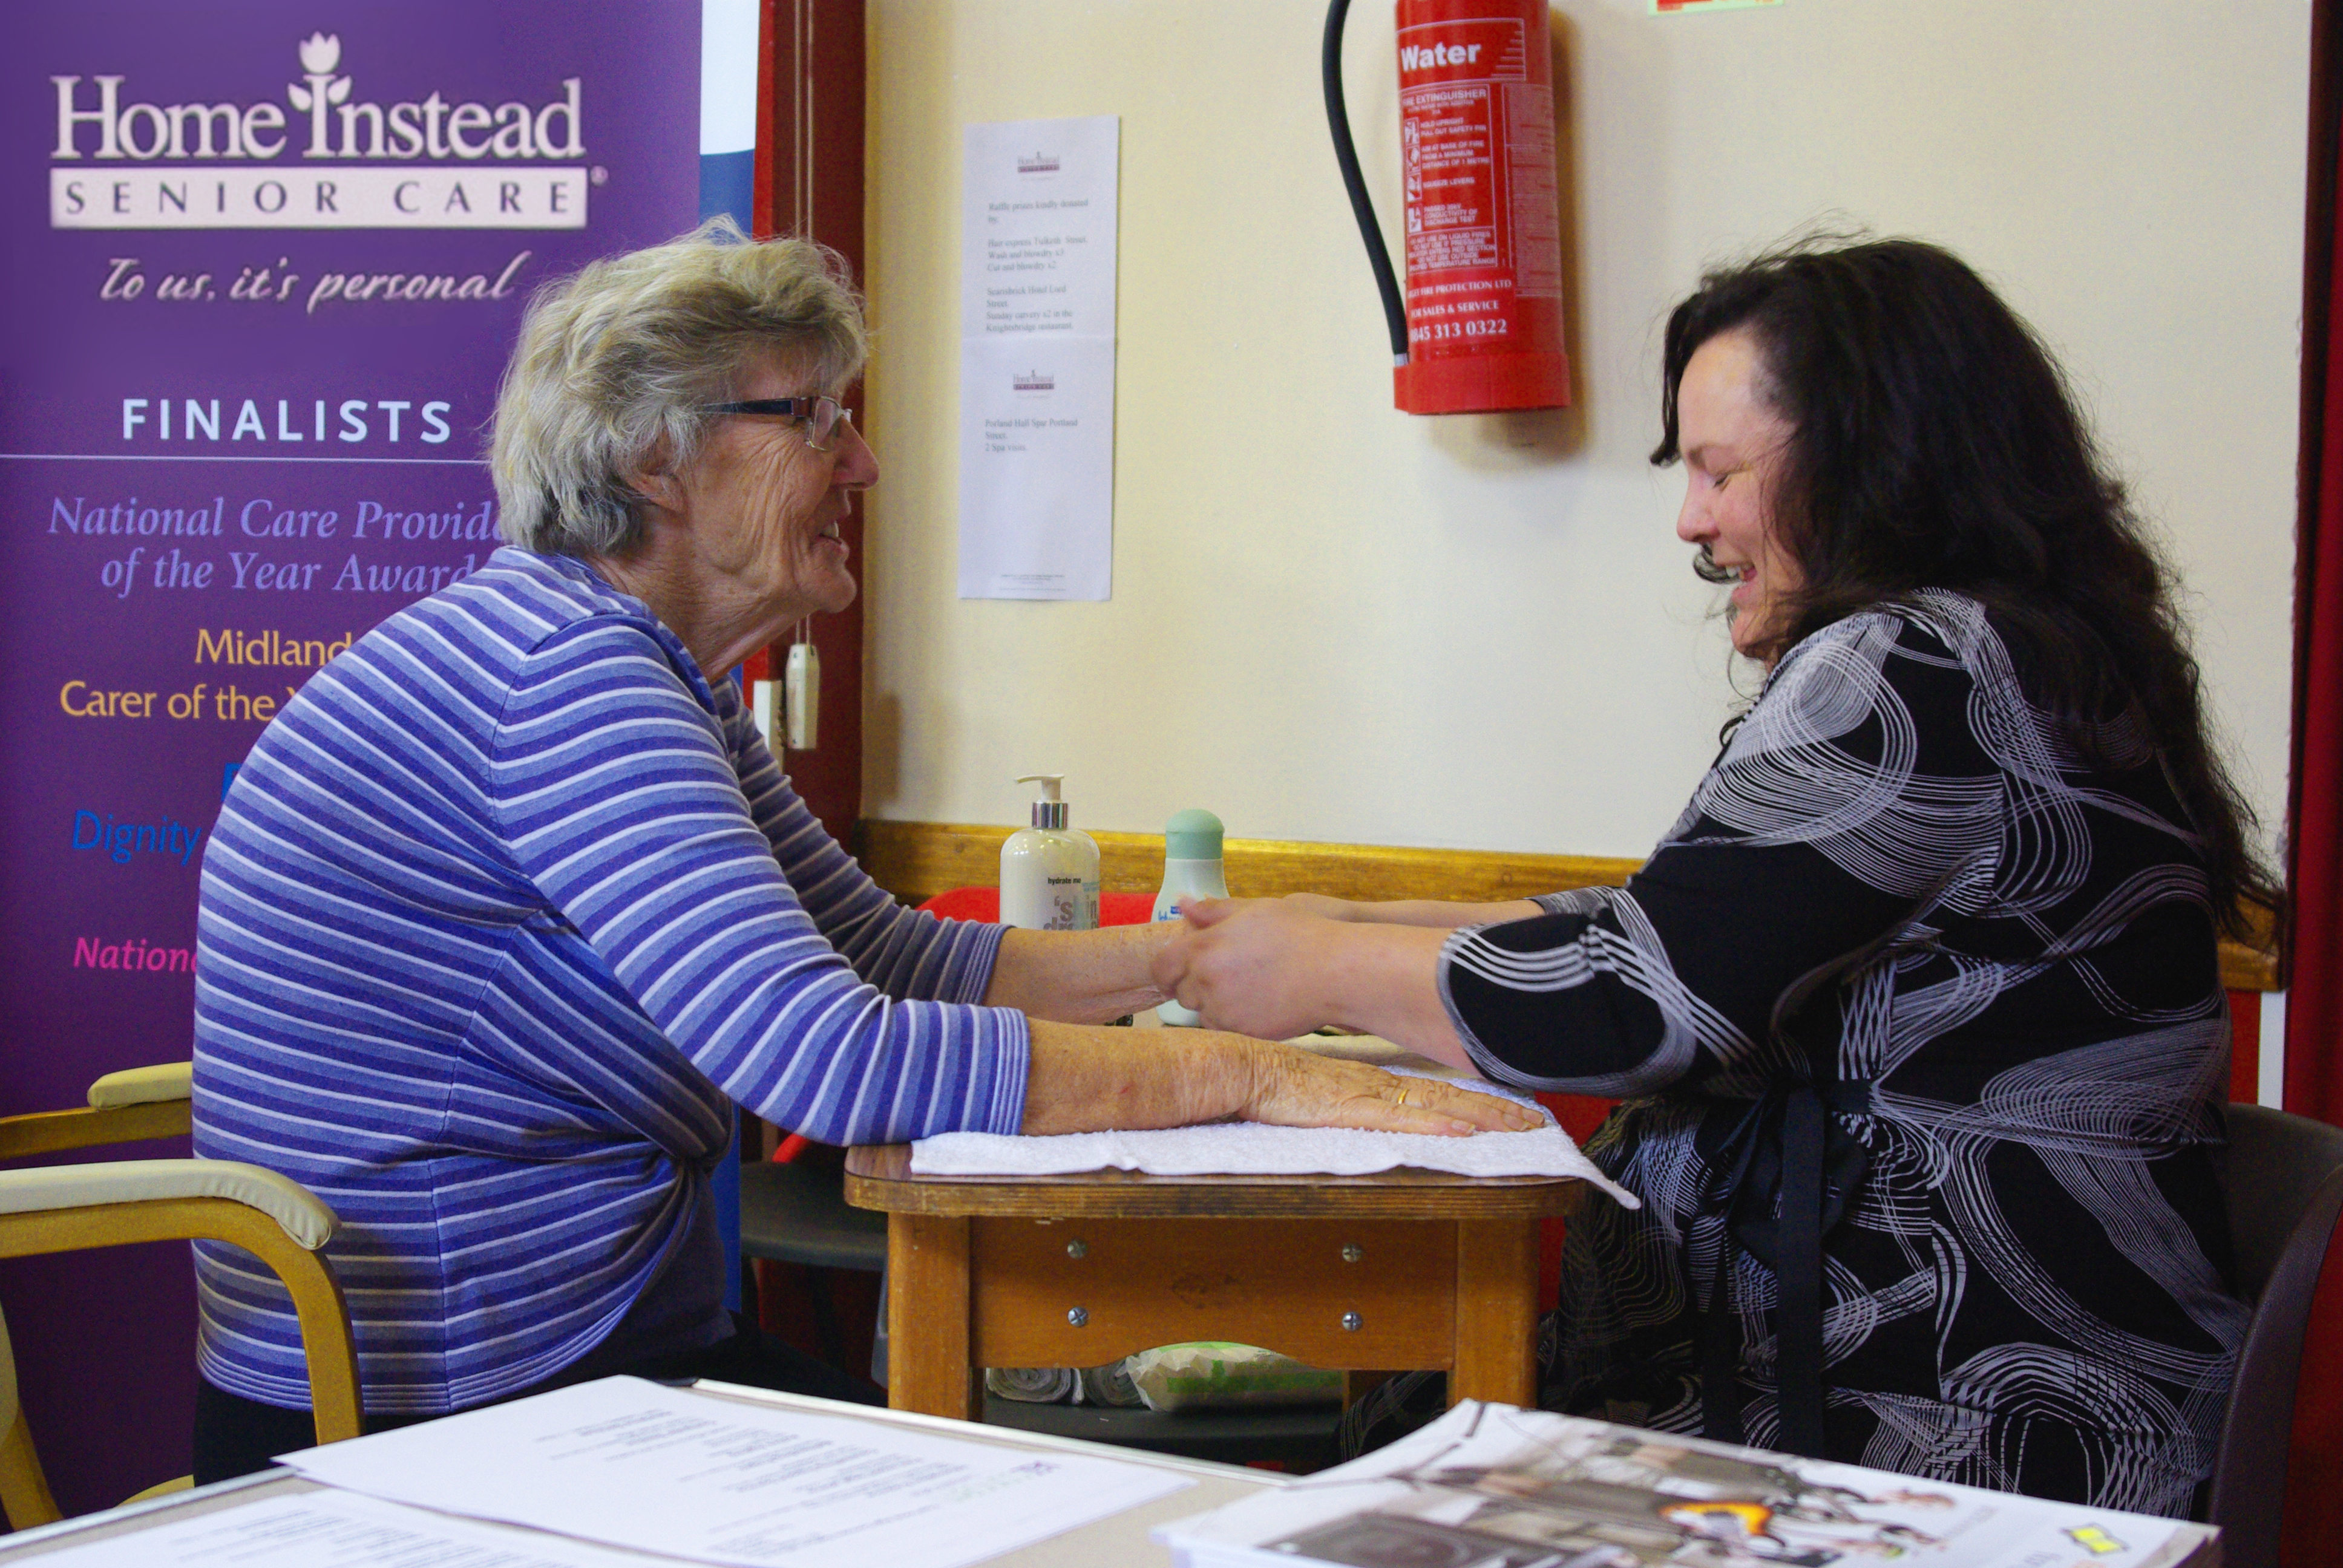 Home Instead Southport CAREgiver providing a massage to an elderly client on the Older Persons' Information Day